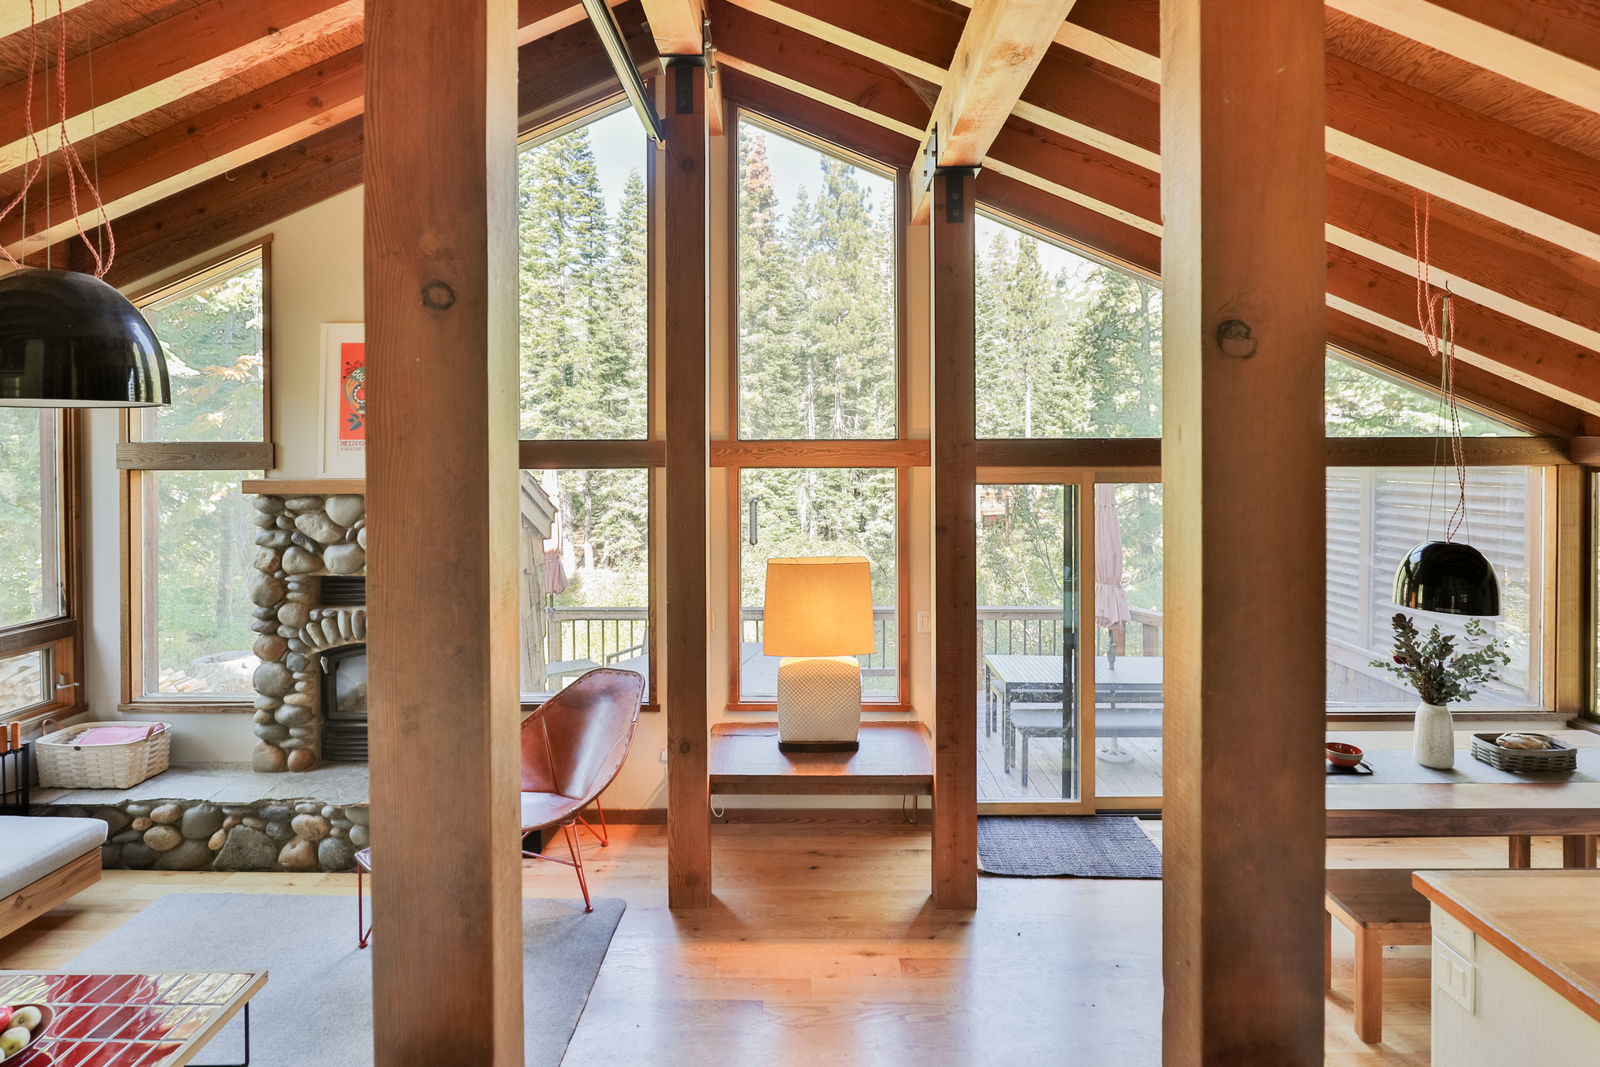 You can rent this Lake Tahoe cabin decked out in Heath Ceramics style